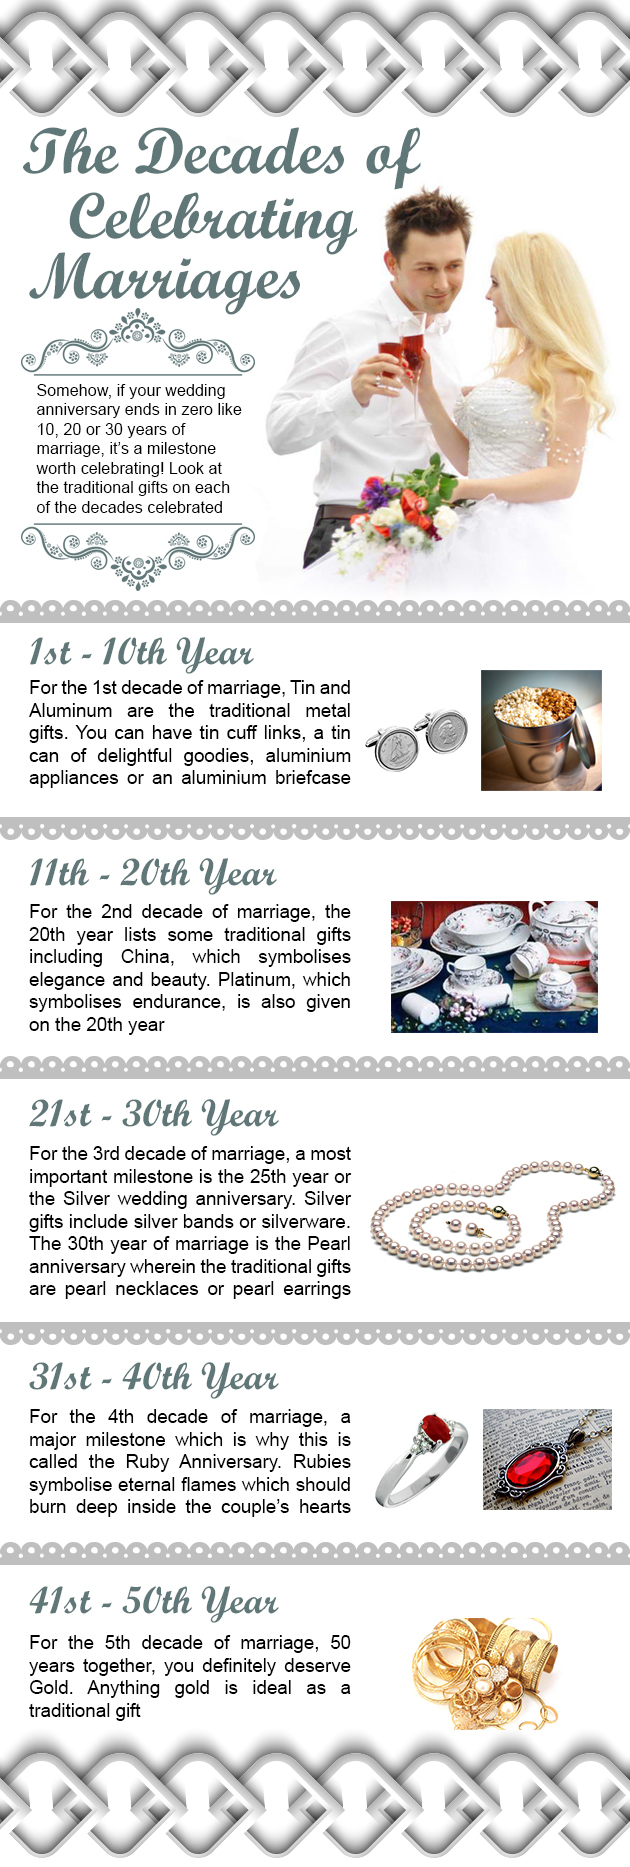 The Decades of Celebrating Marriages